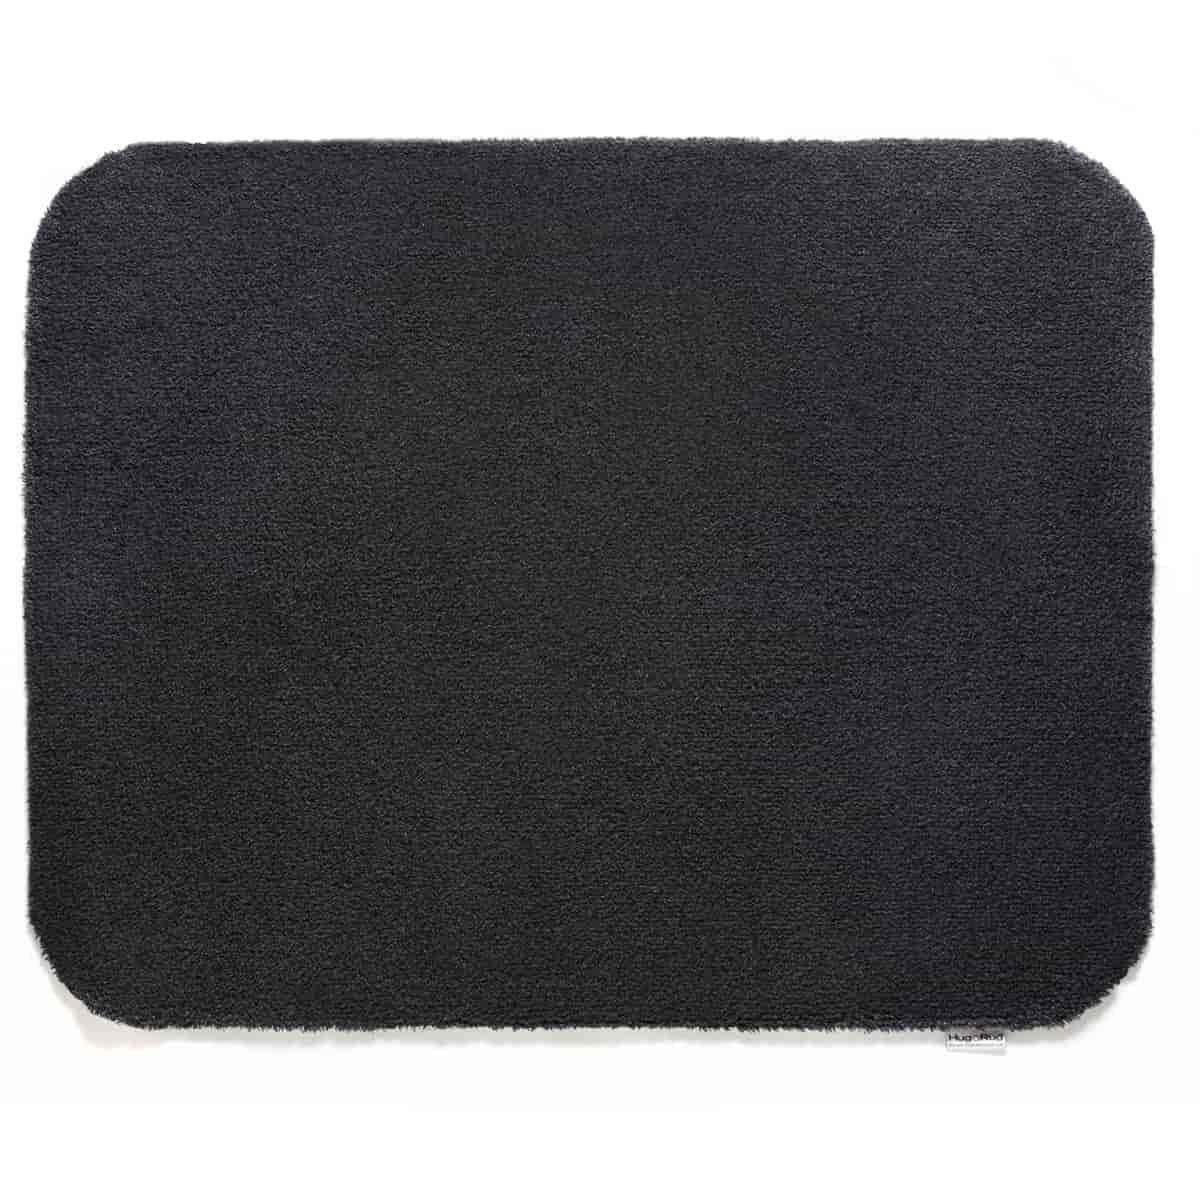 paillasson tapis charcoal 100 recycl 75x50cm paillasson nettoie bottes. Black Bedroom Furniture Sets. Home Design Ideas